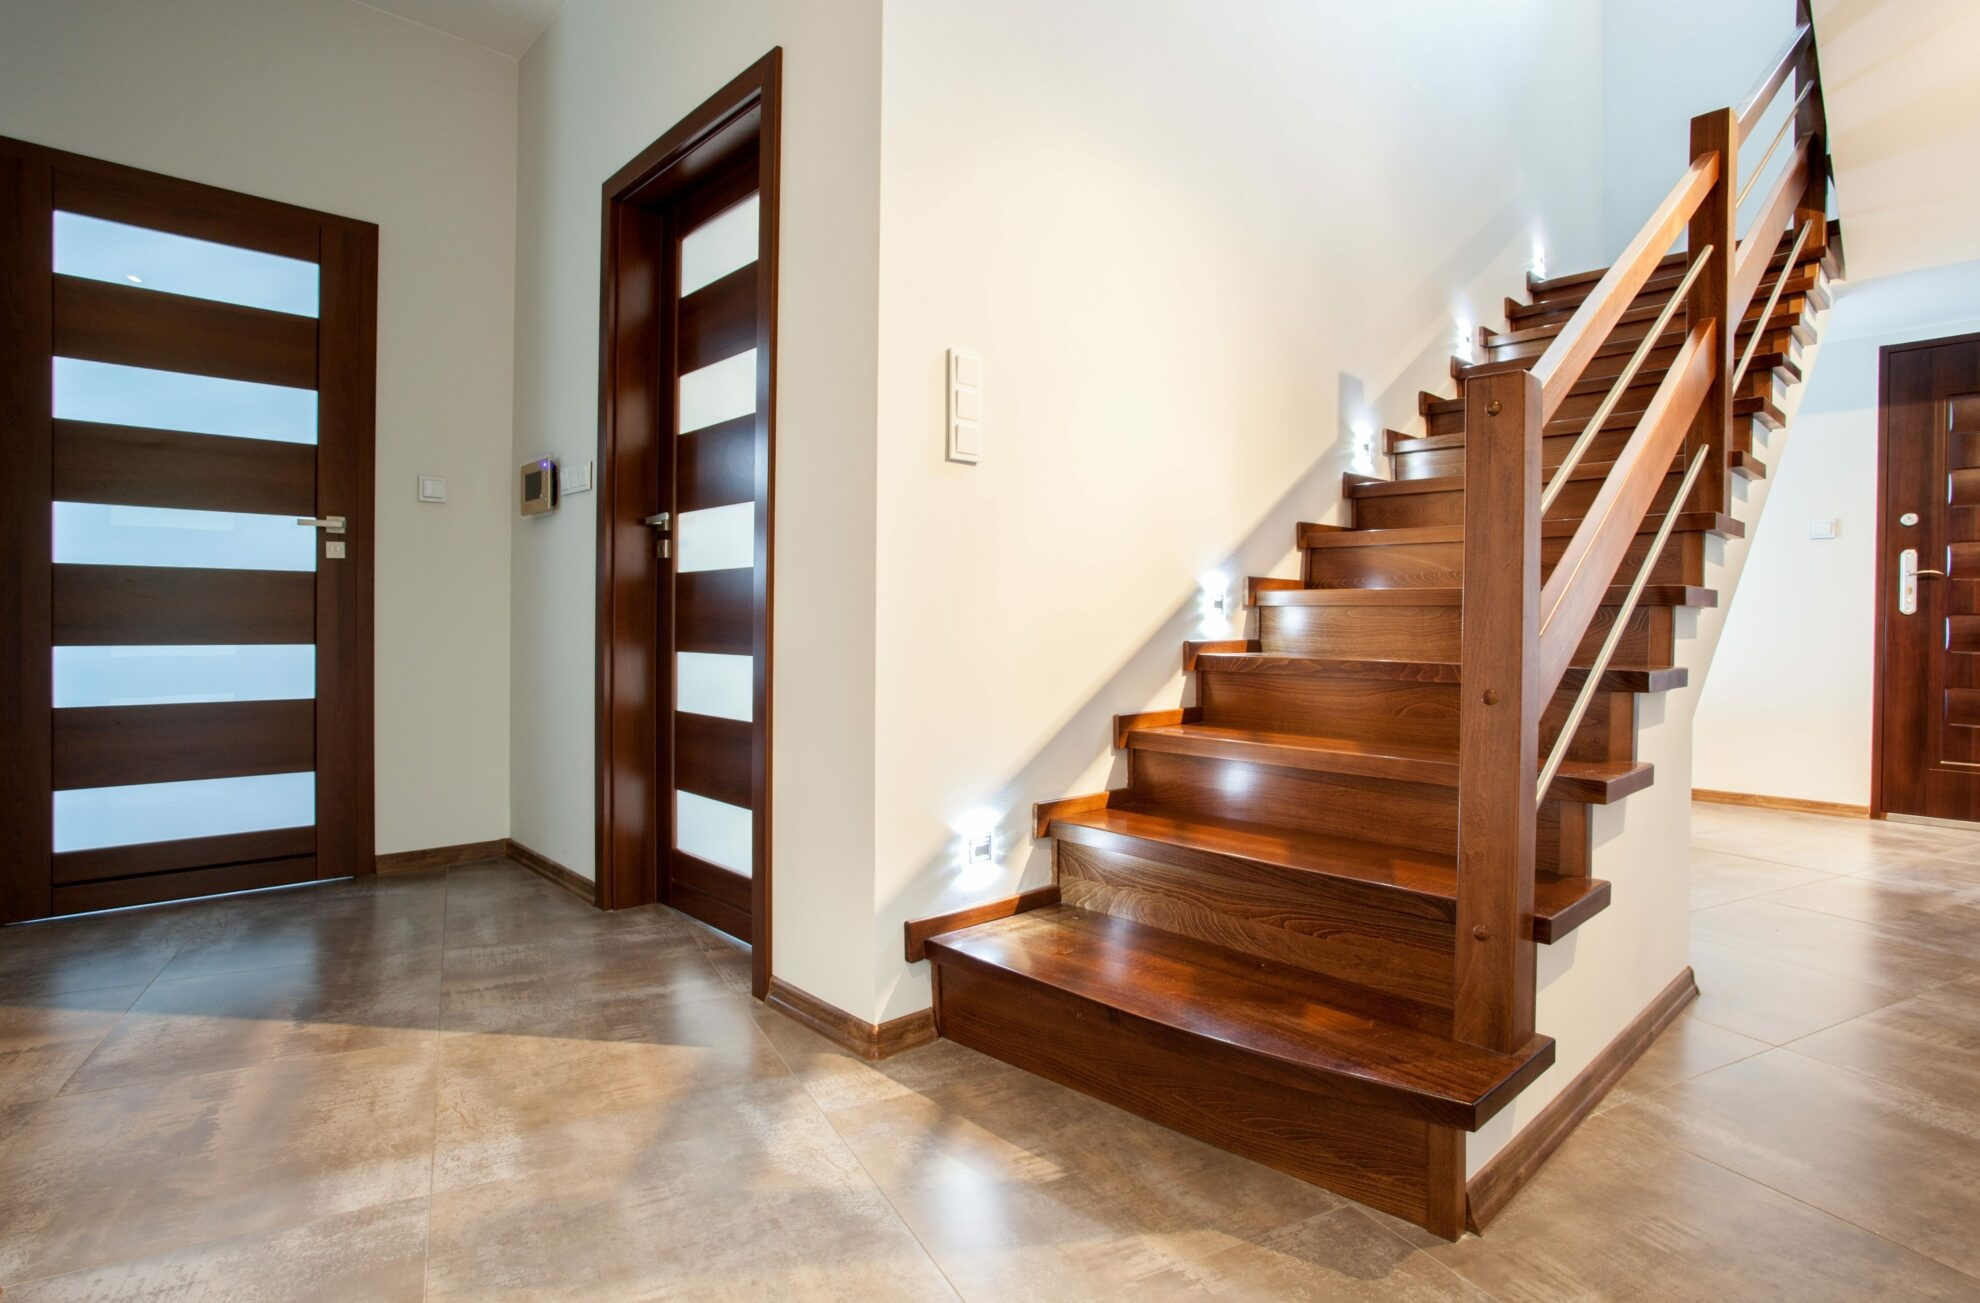 How Much Does Refinishing Hardwood Stairs Cost   Staircase Refinishing Near Me   Basement   Restaining   Brown Stained   White Riser   Grey Flooring